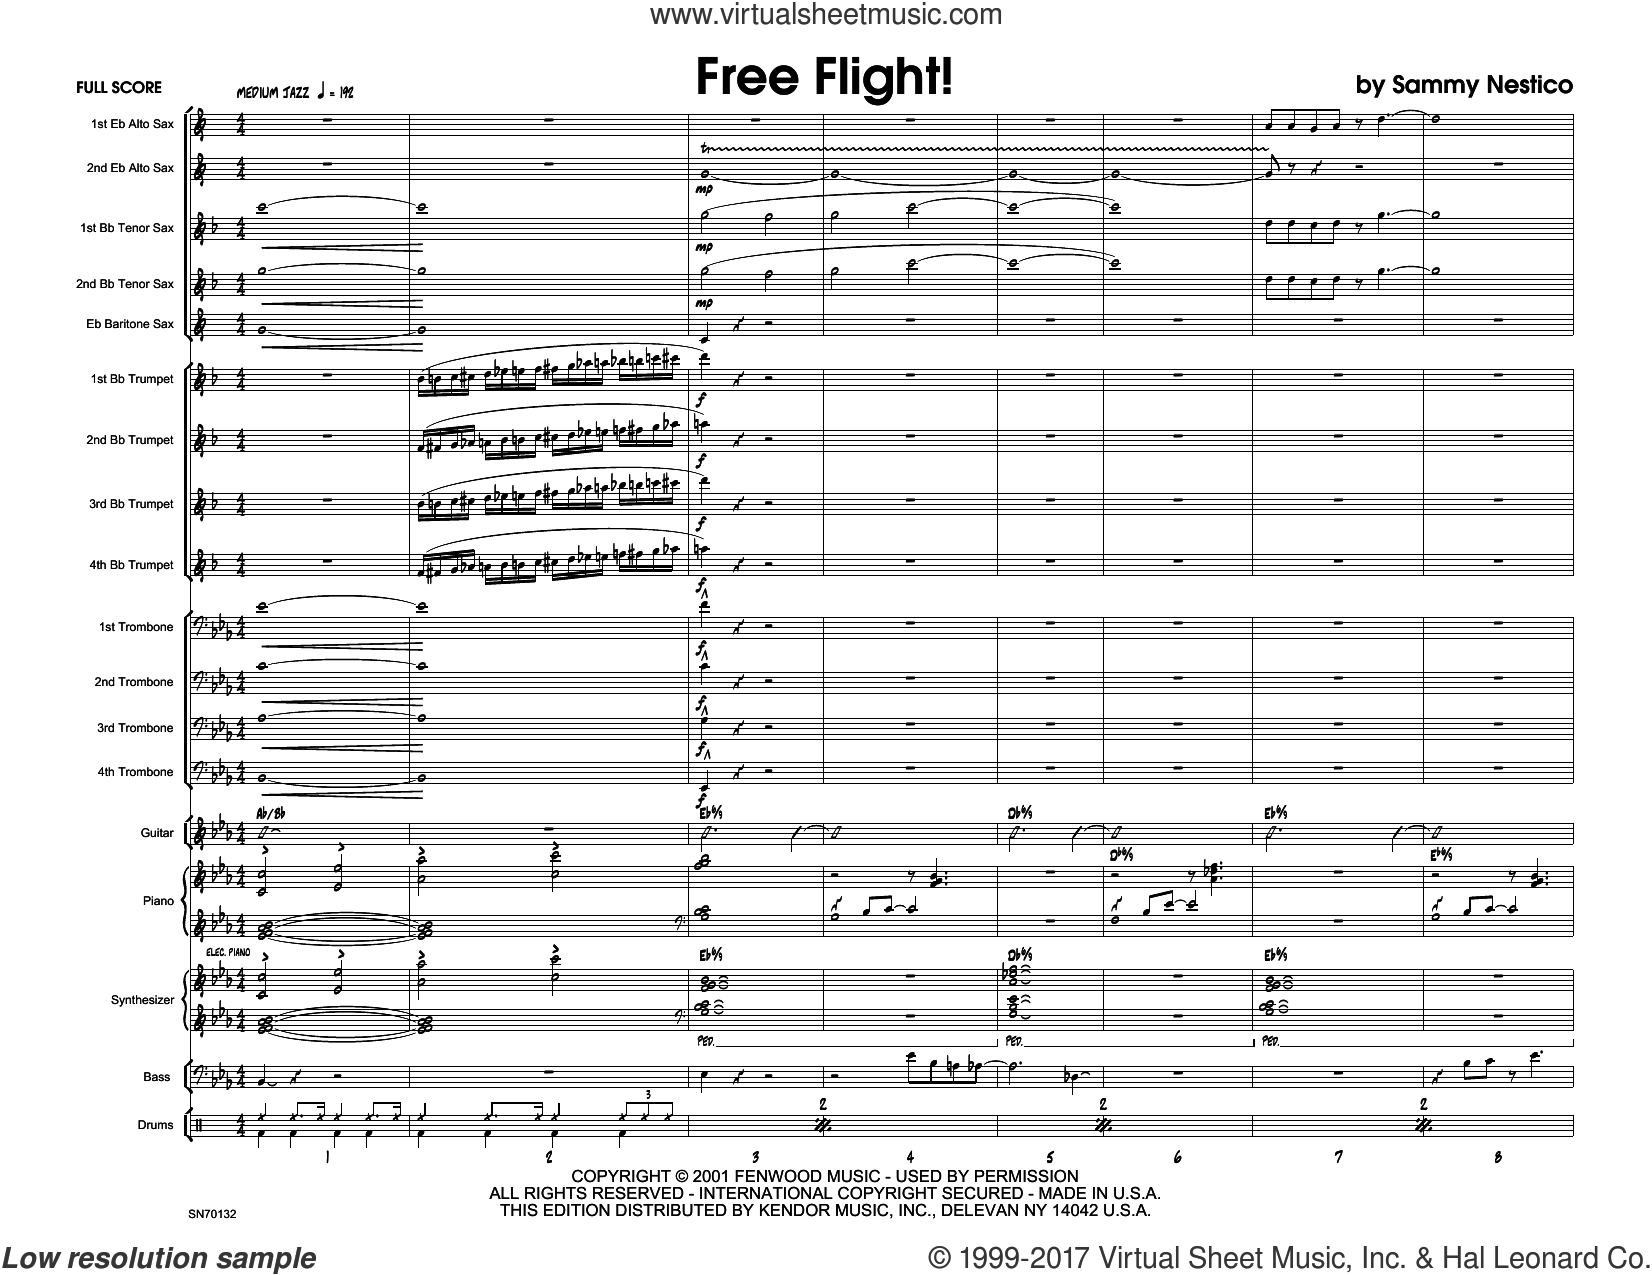 Nestico - Free Flight! sheet music (complete collection) for jazz band